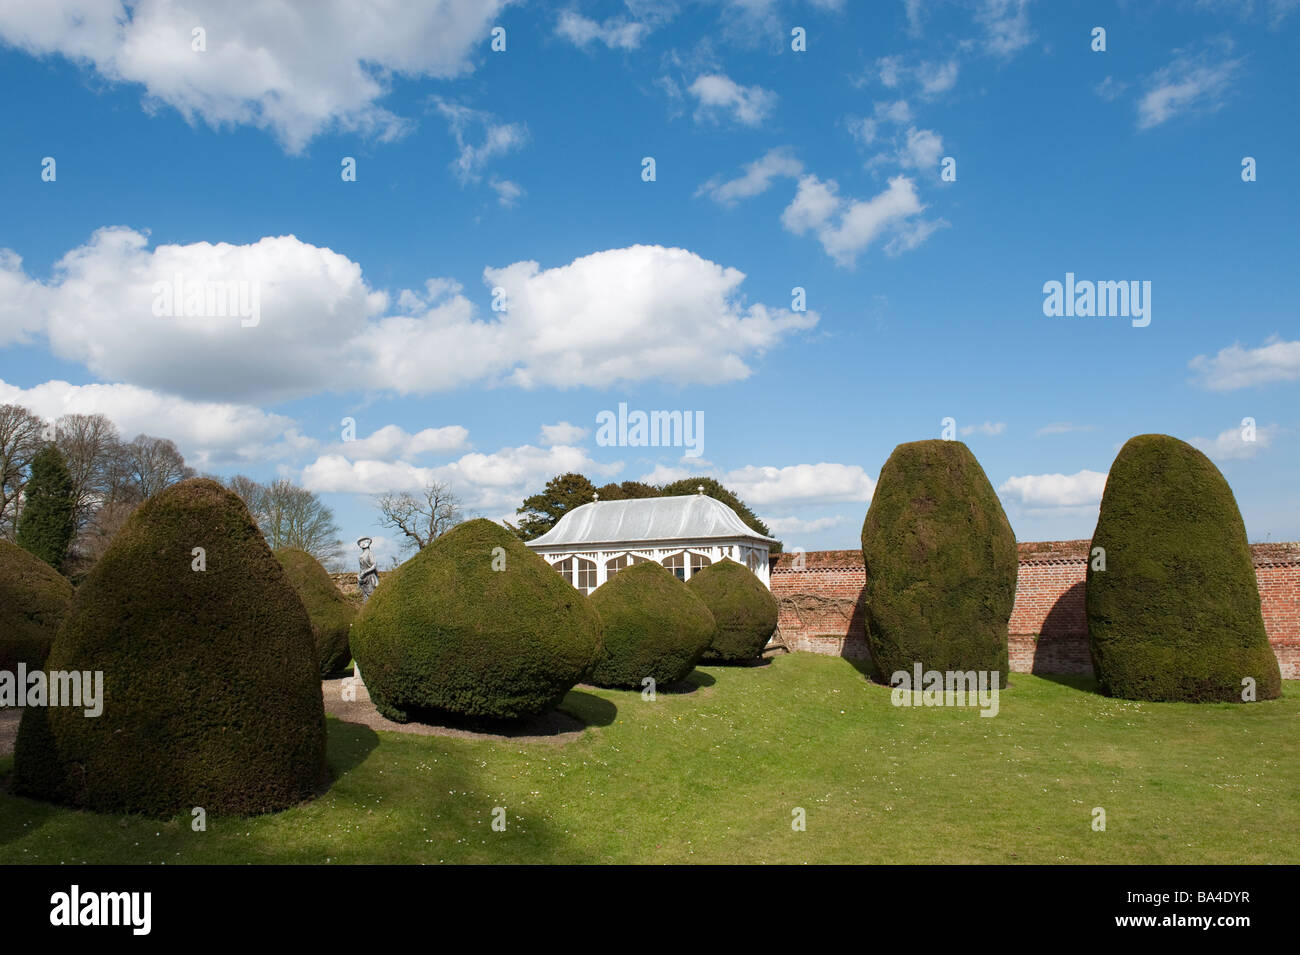 Yew topiary, Yorkshire, England, 'Great Britain' 'United Kingdom' - Stock Image